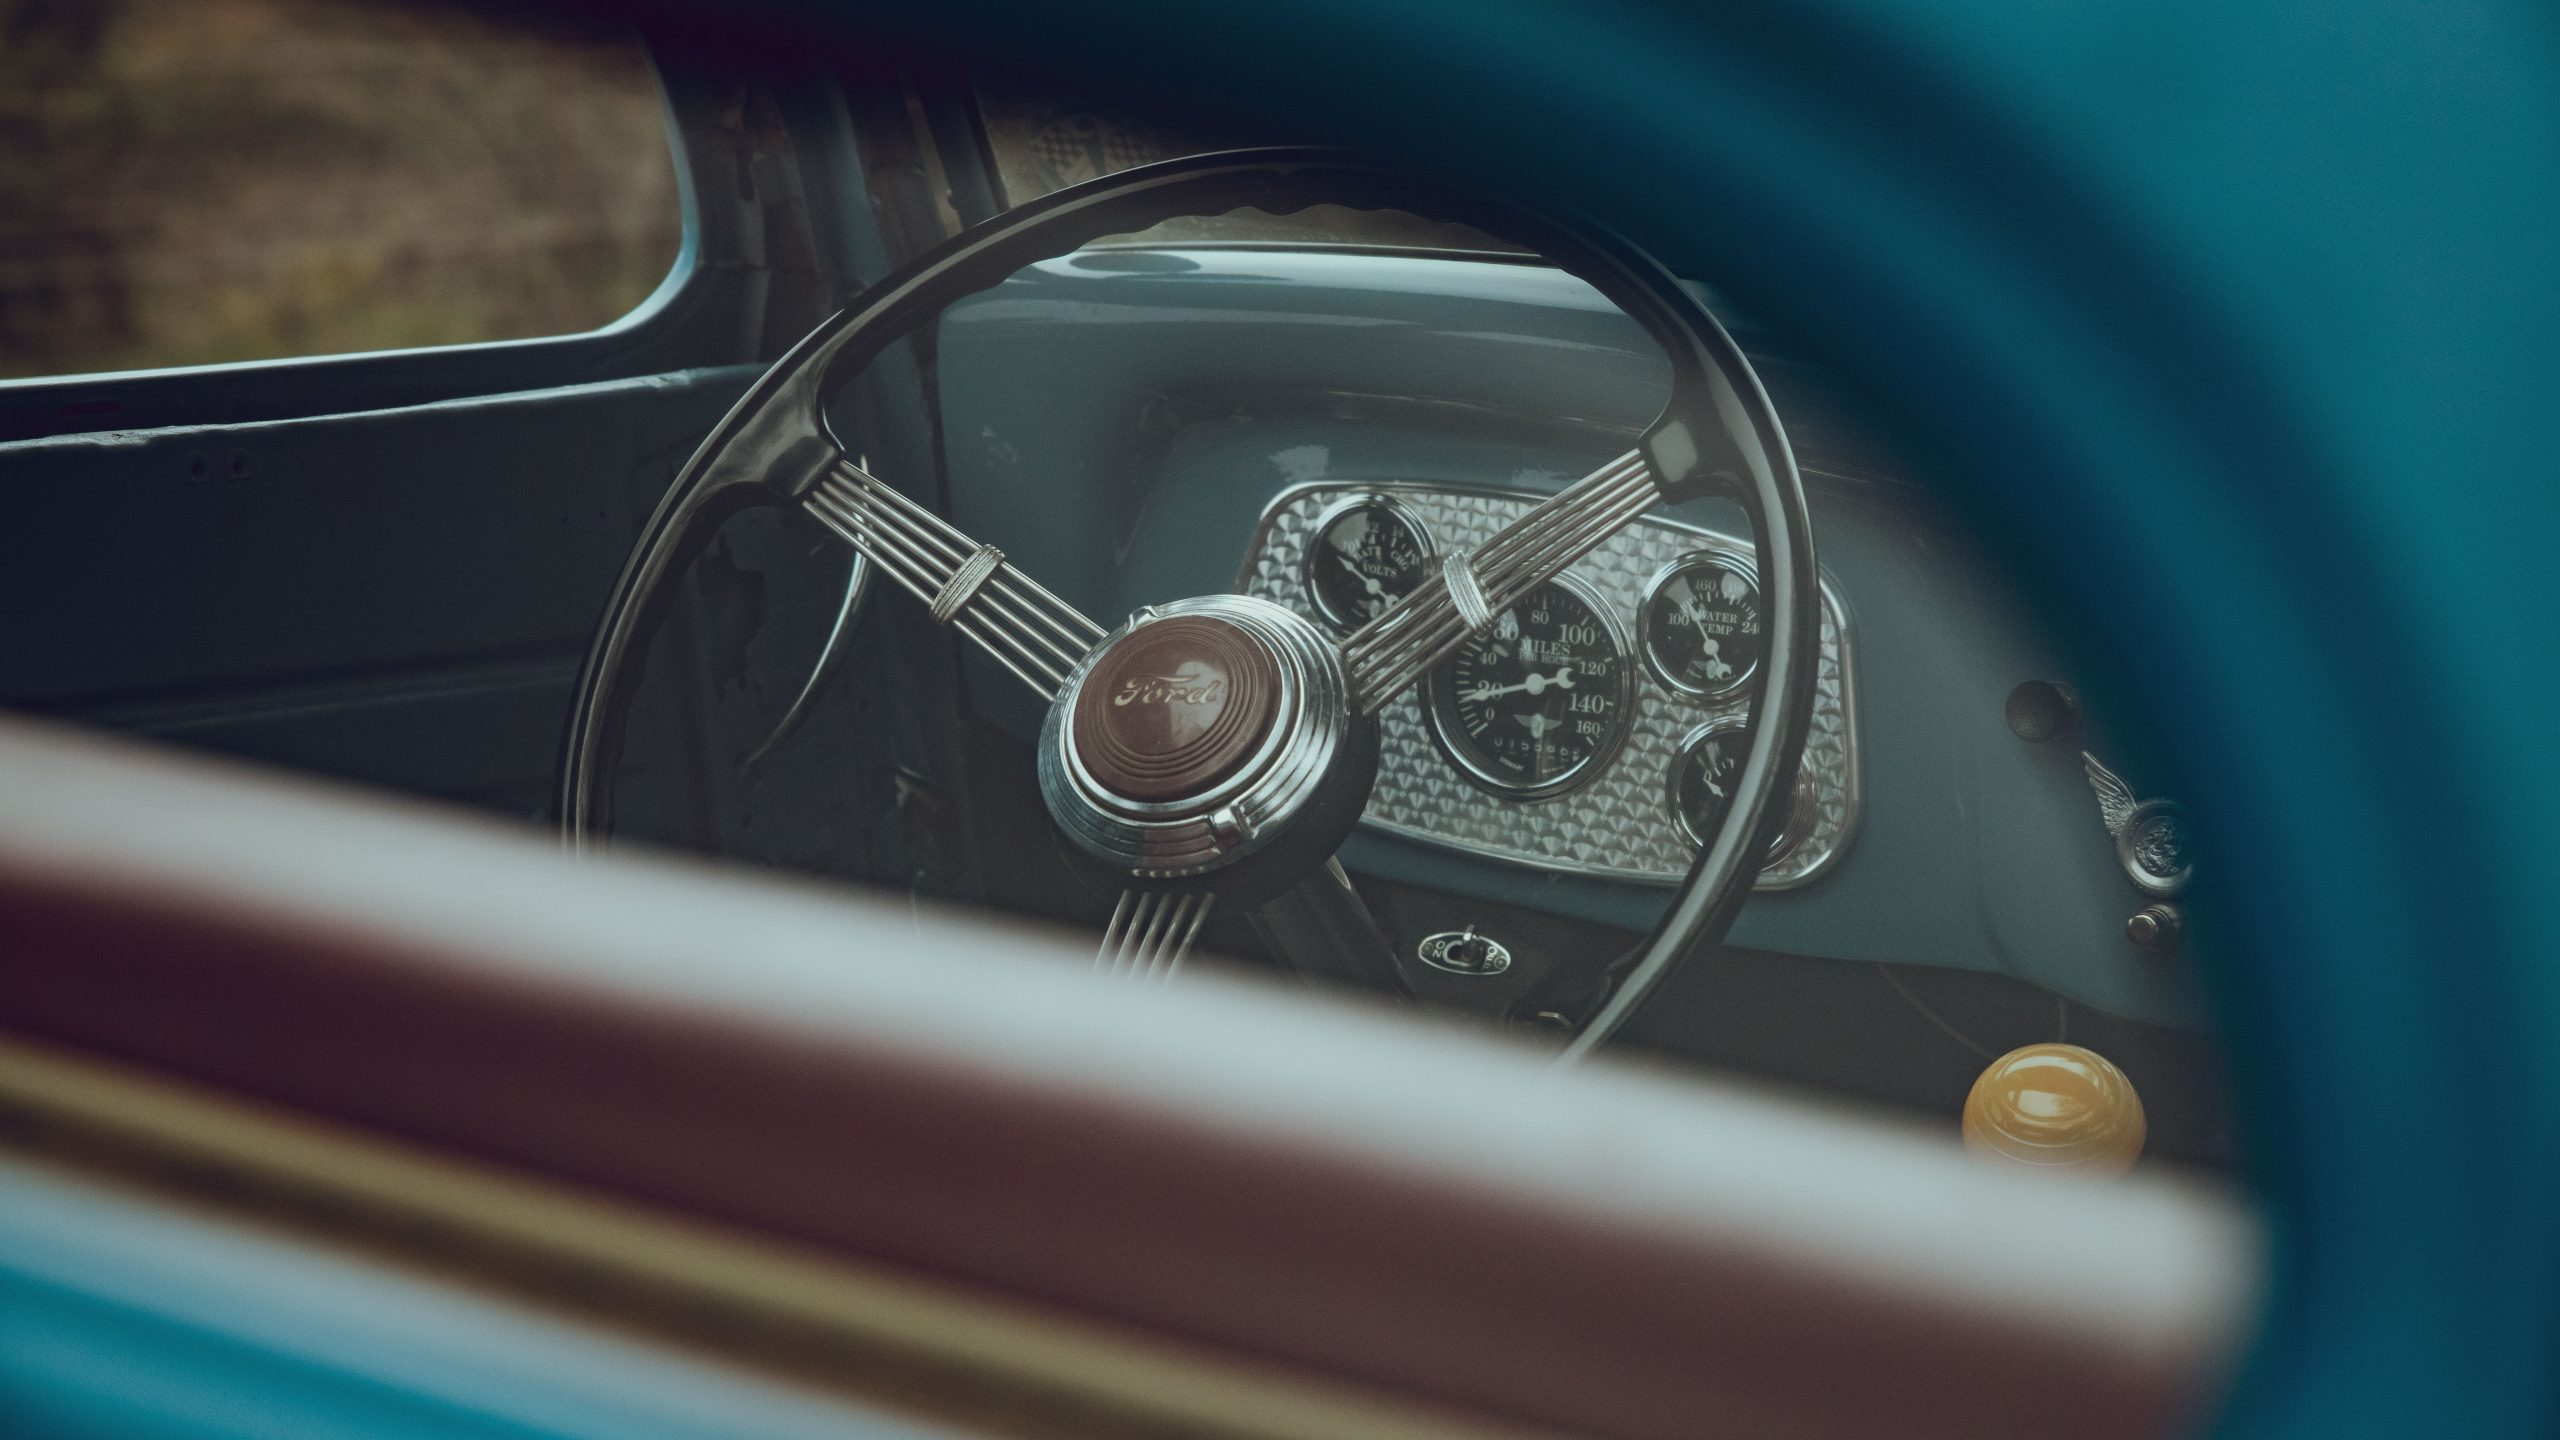 1933 Ford Coupe interior steering wheel through glass